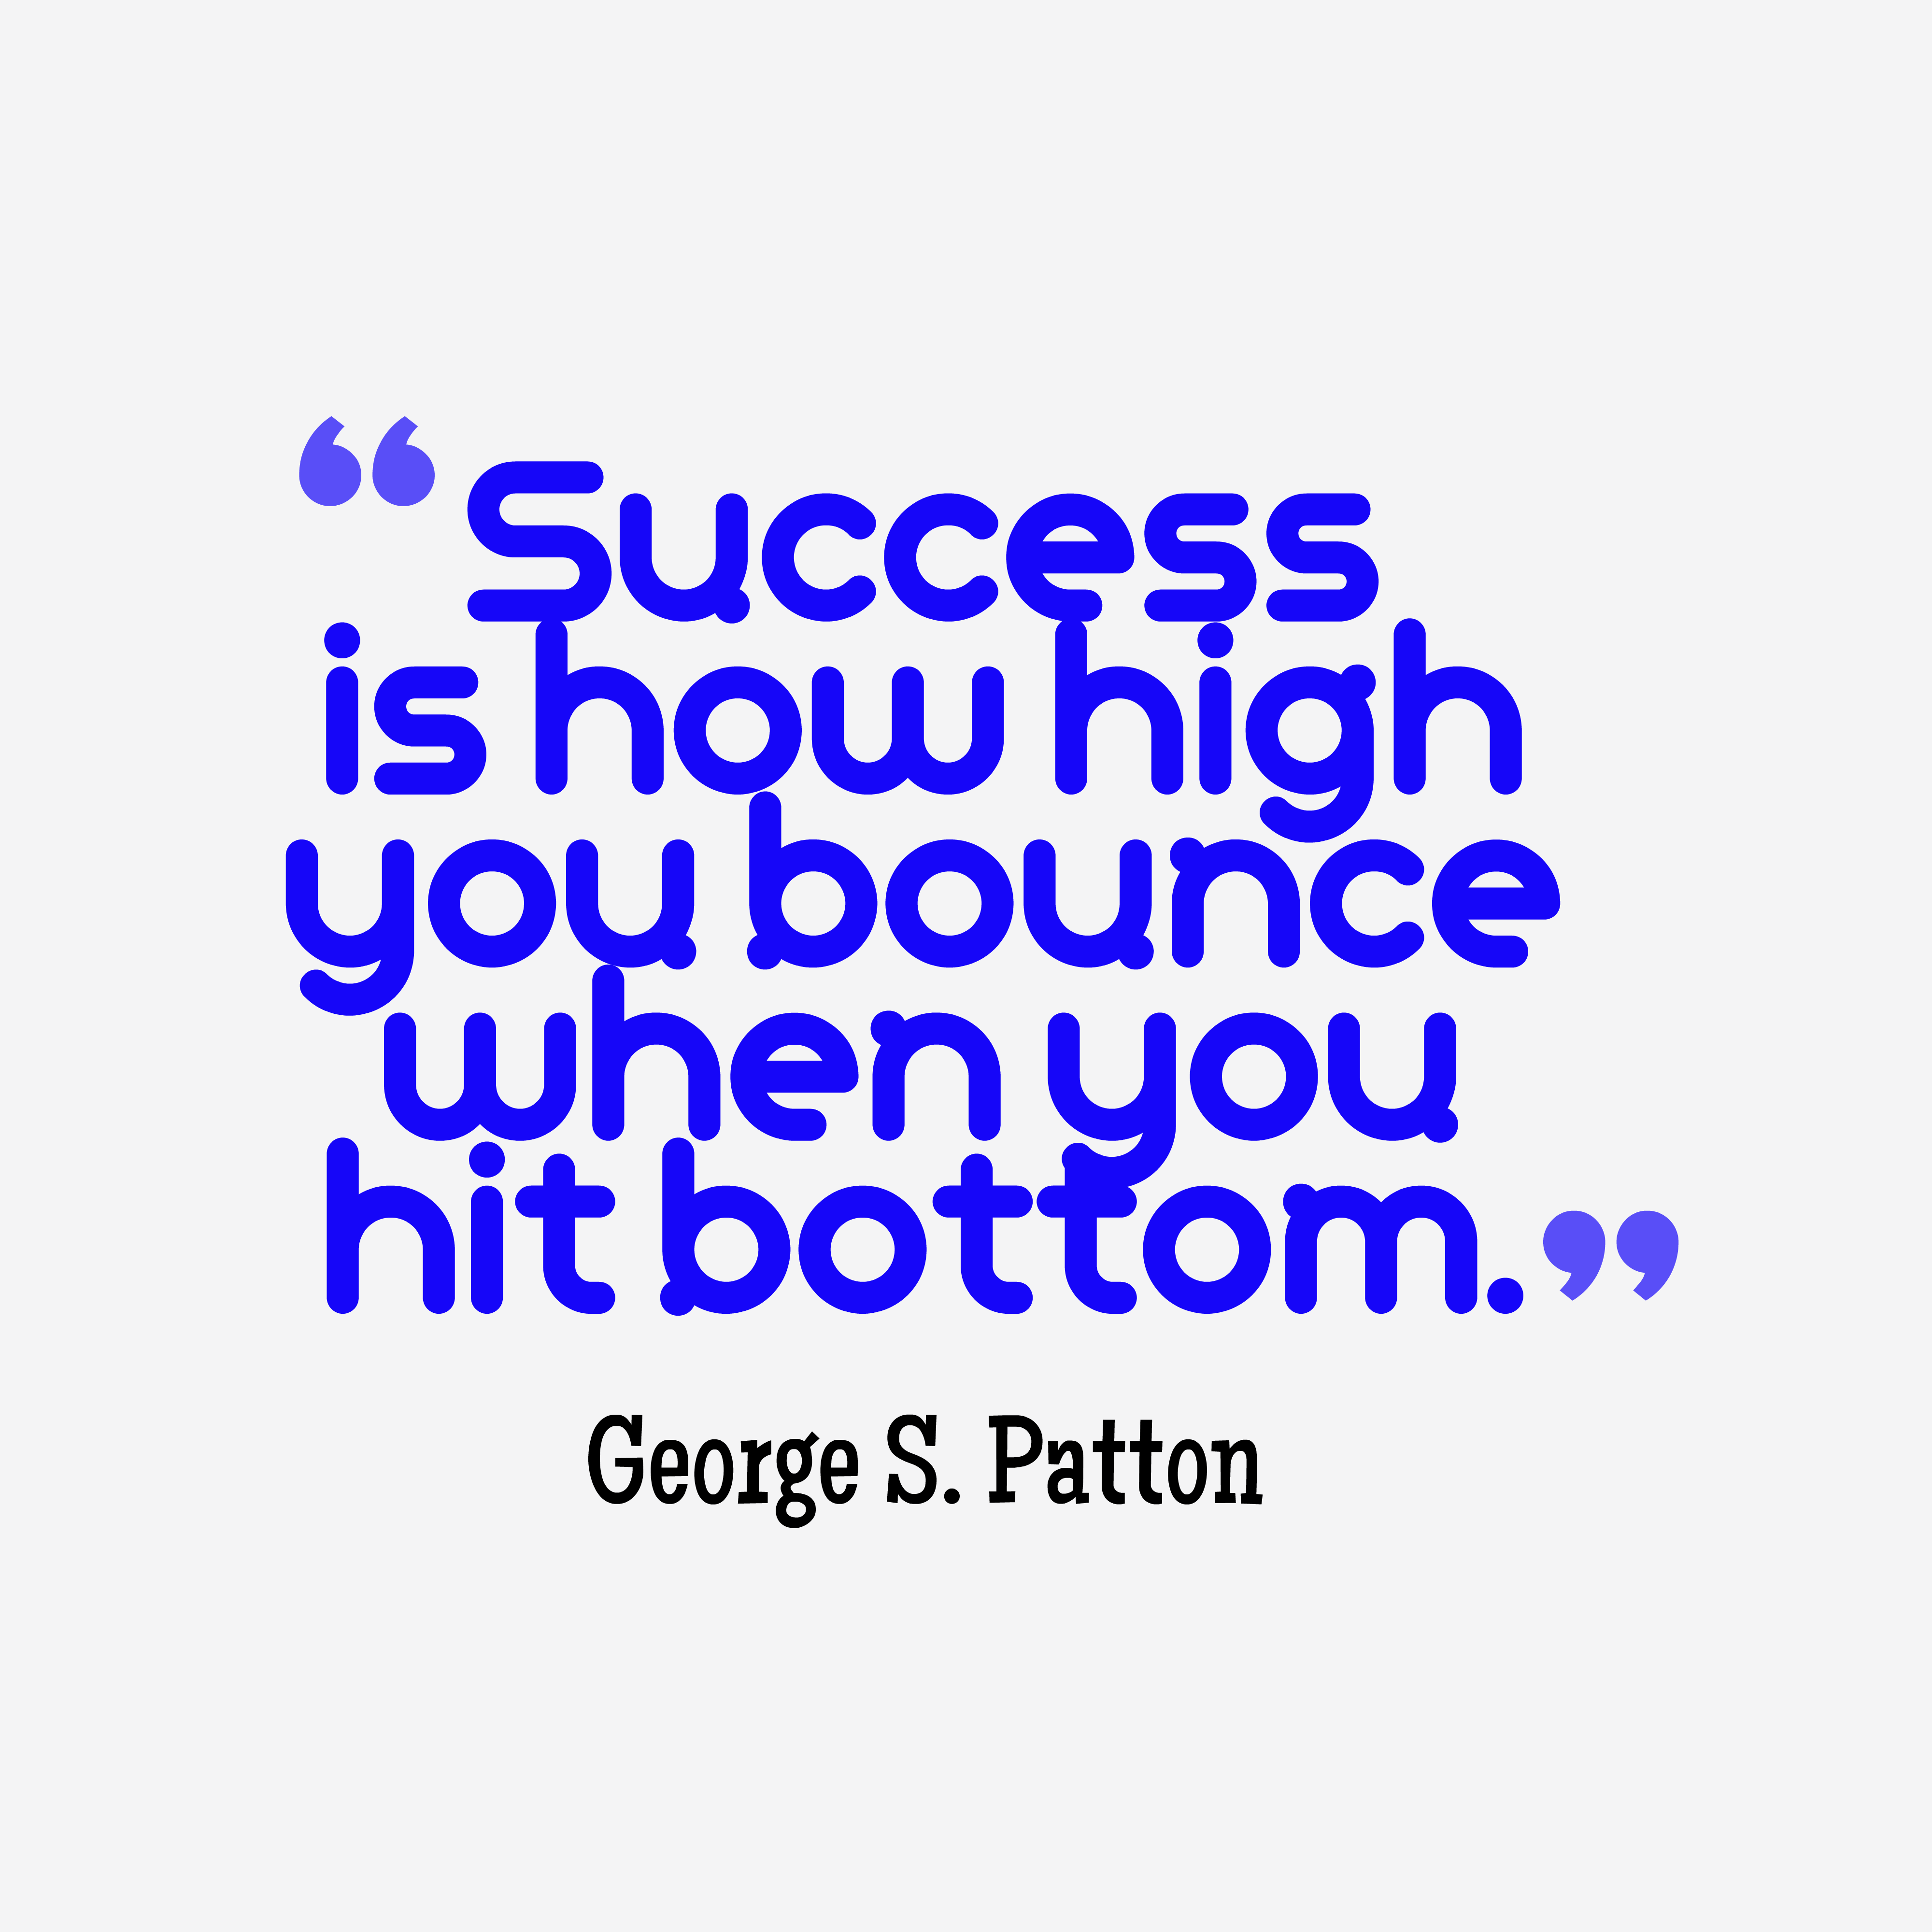 hi-res image of Success is how high you bounce when you hit bottom.